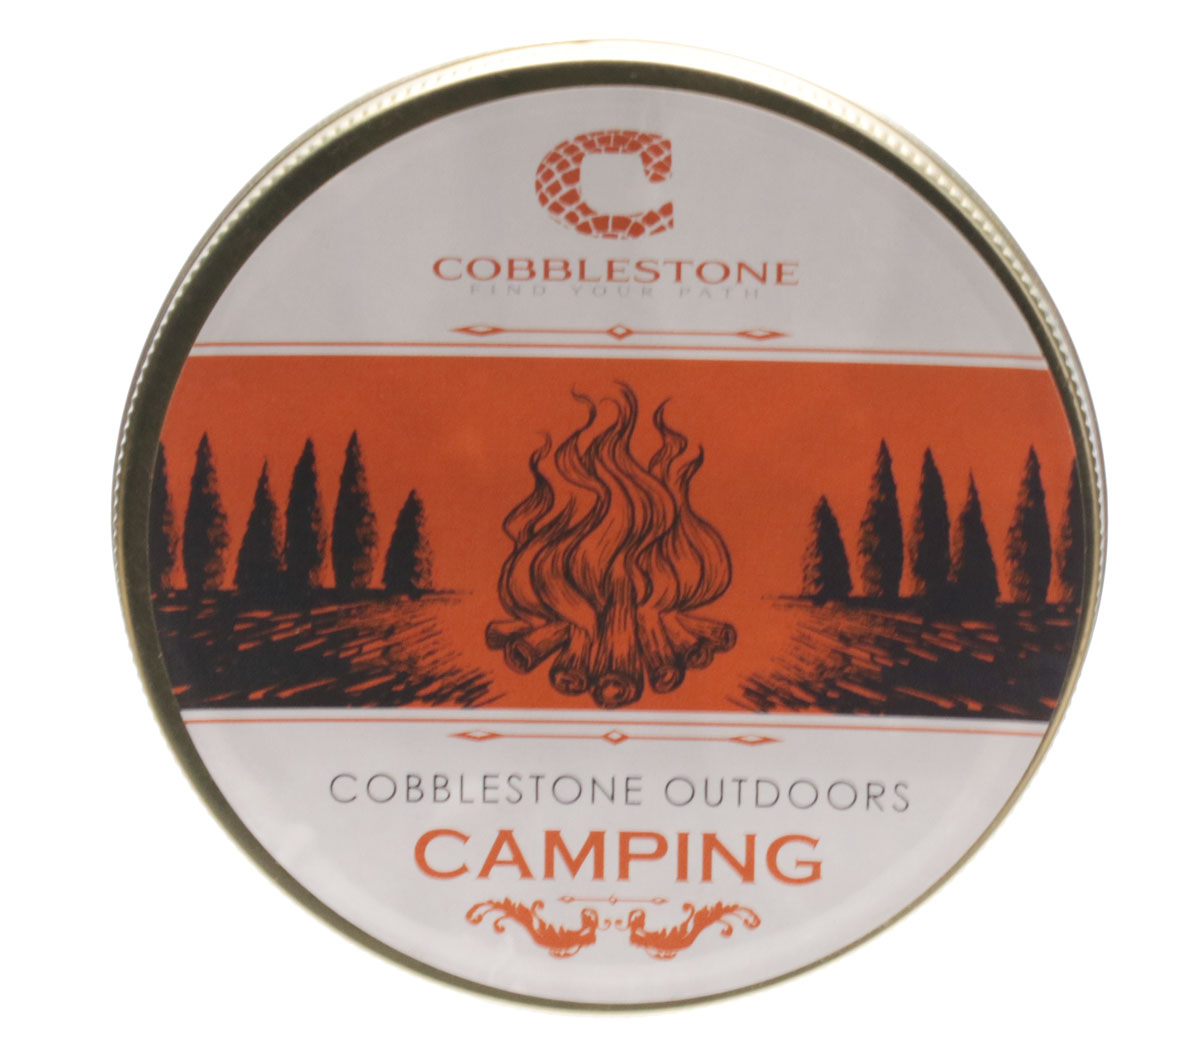 Cobblestone Outdoors Camping 1.75oz